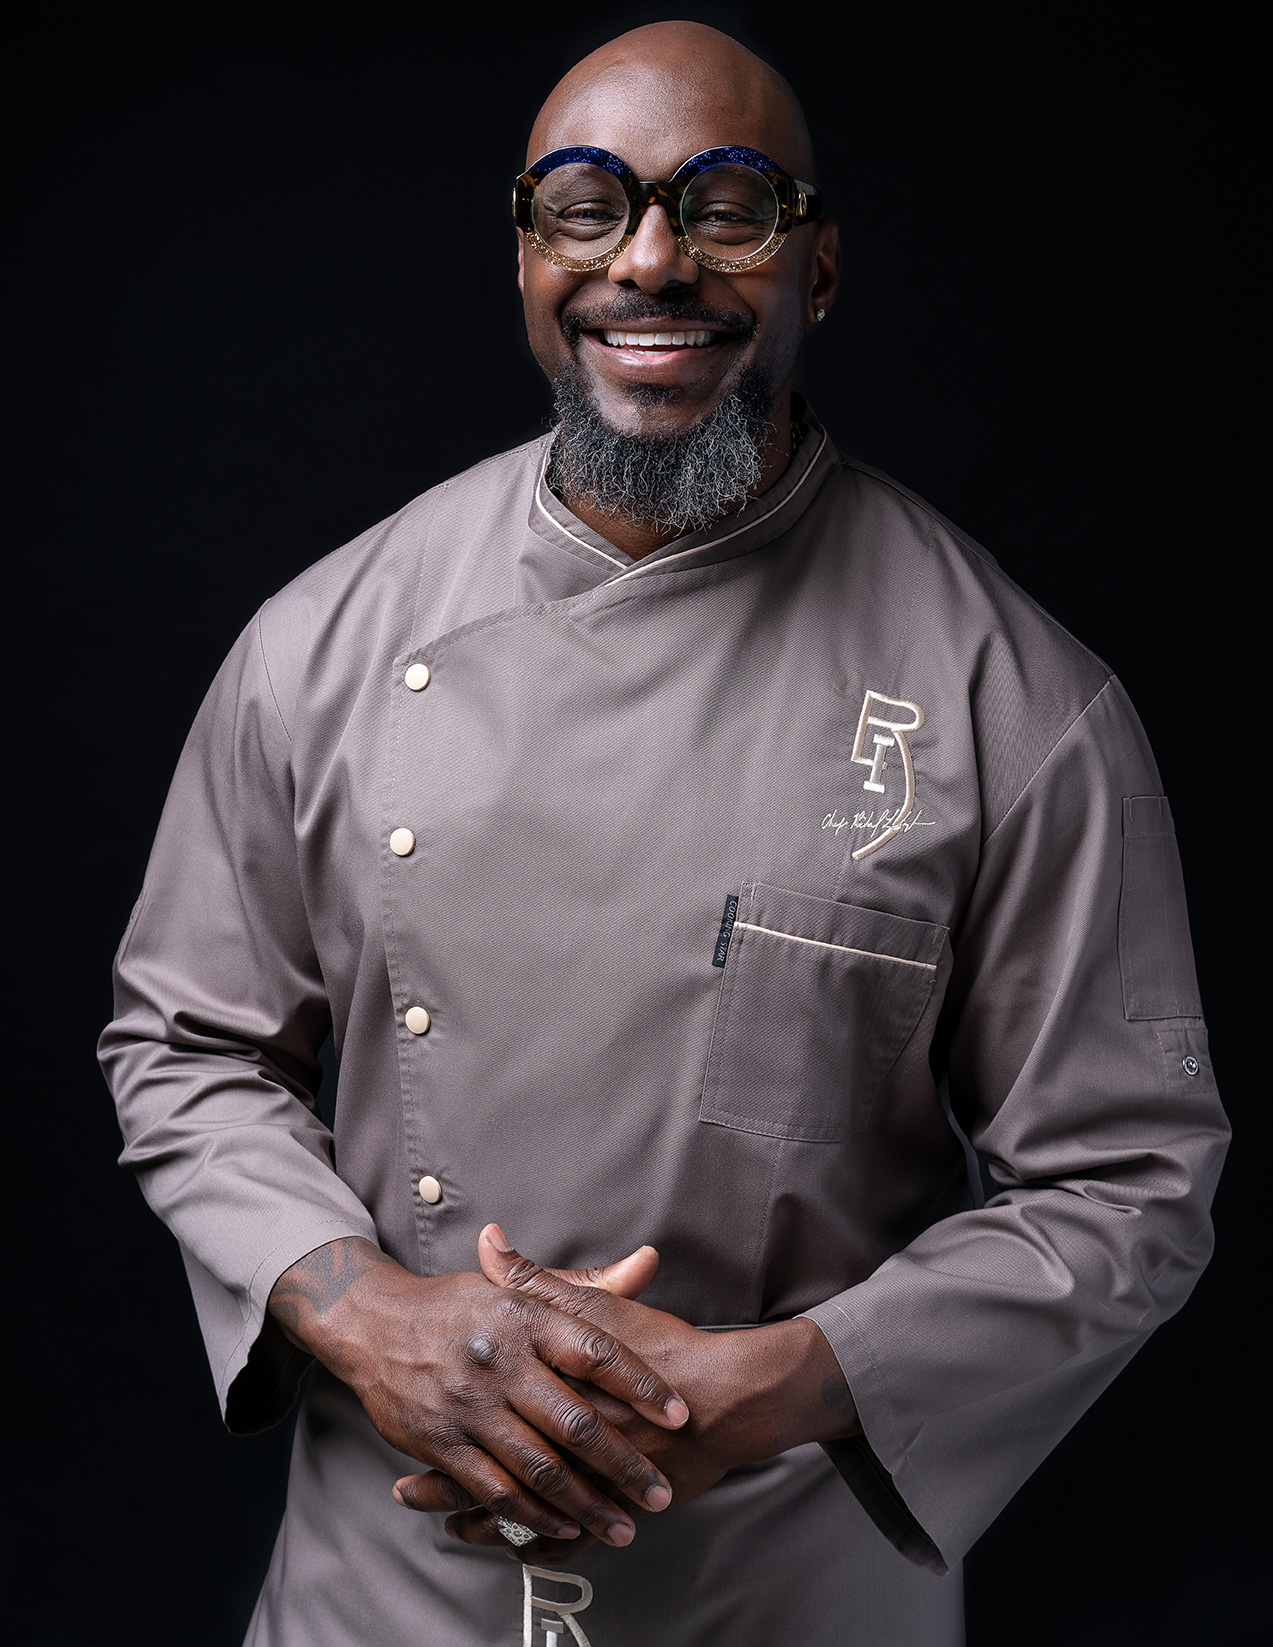 Chef Richard Ingraham